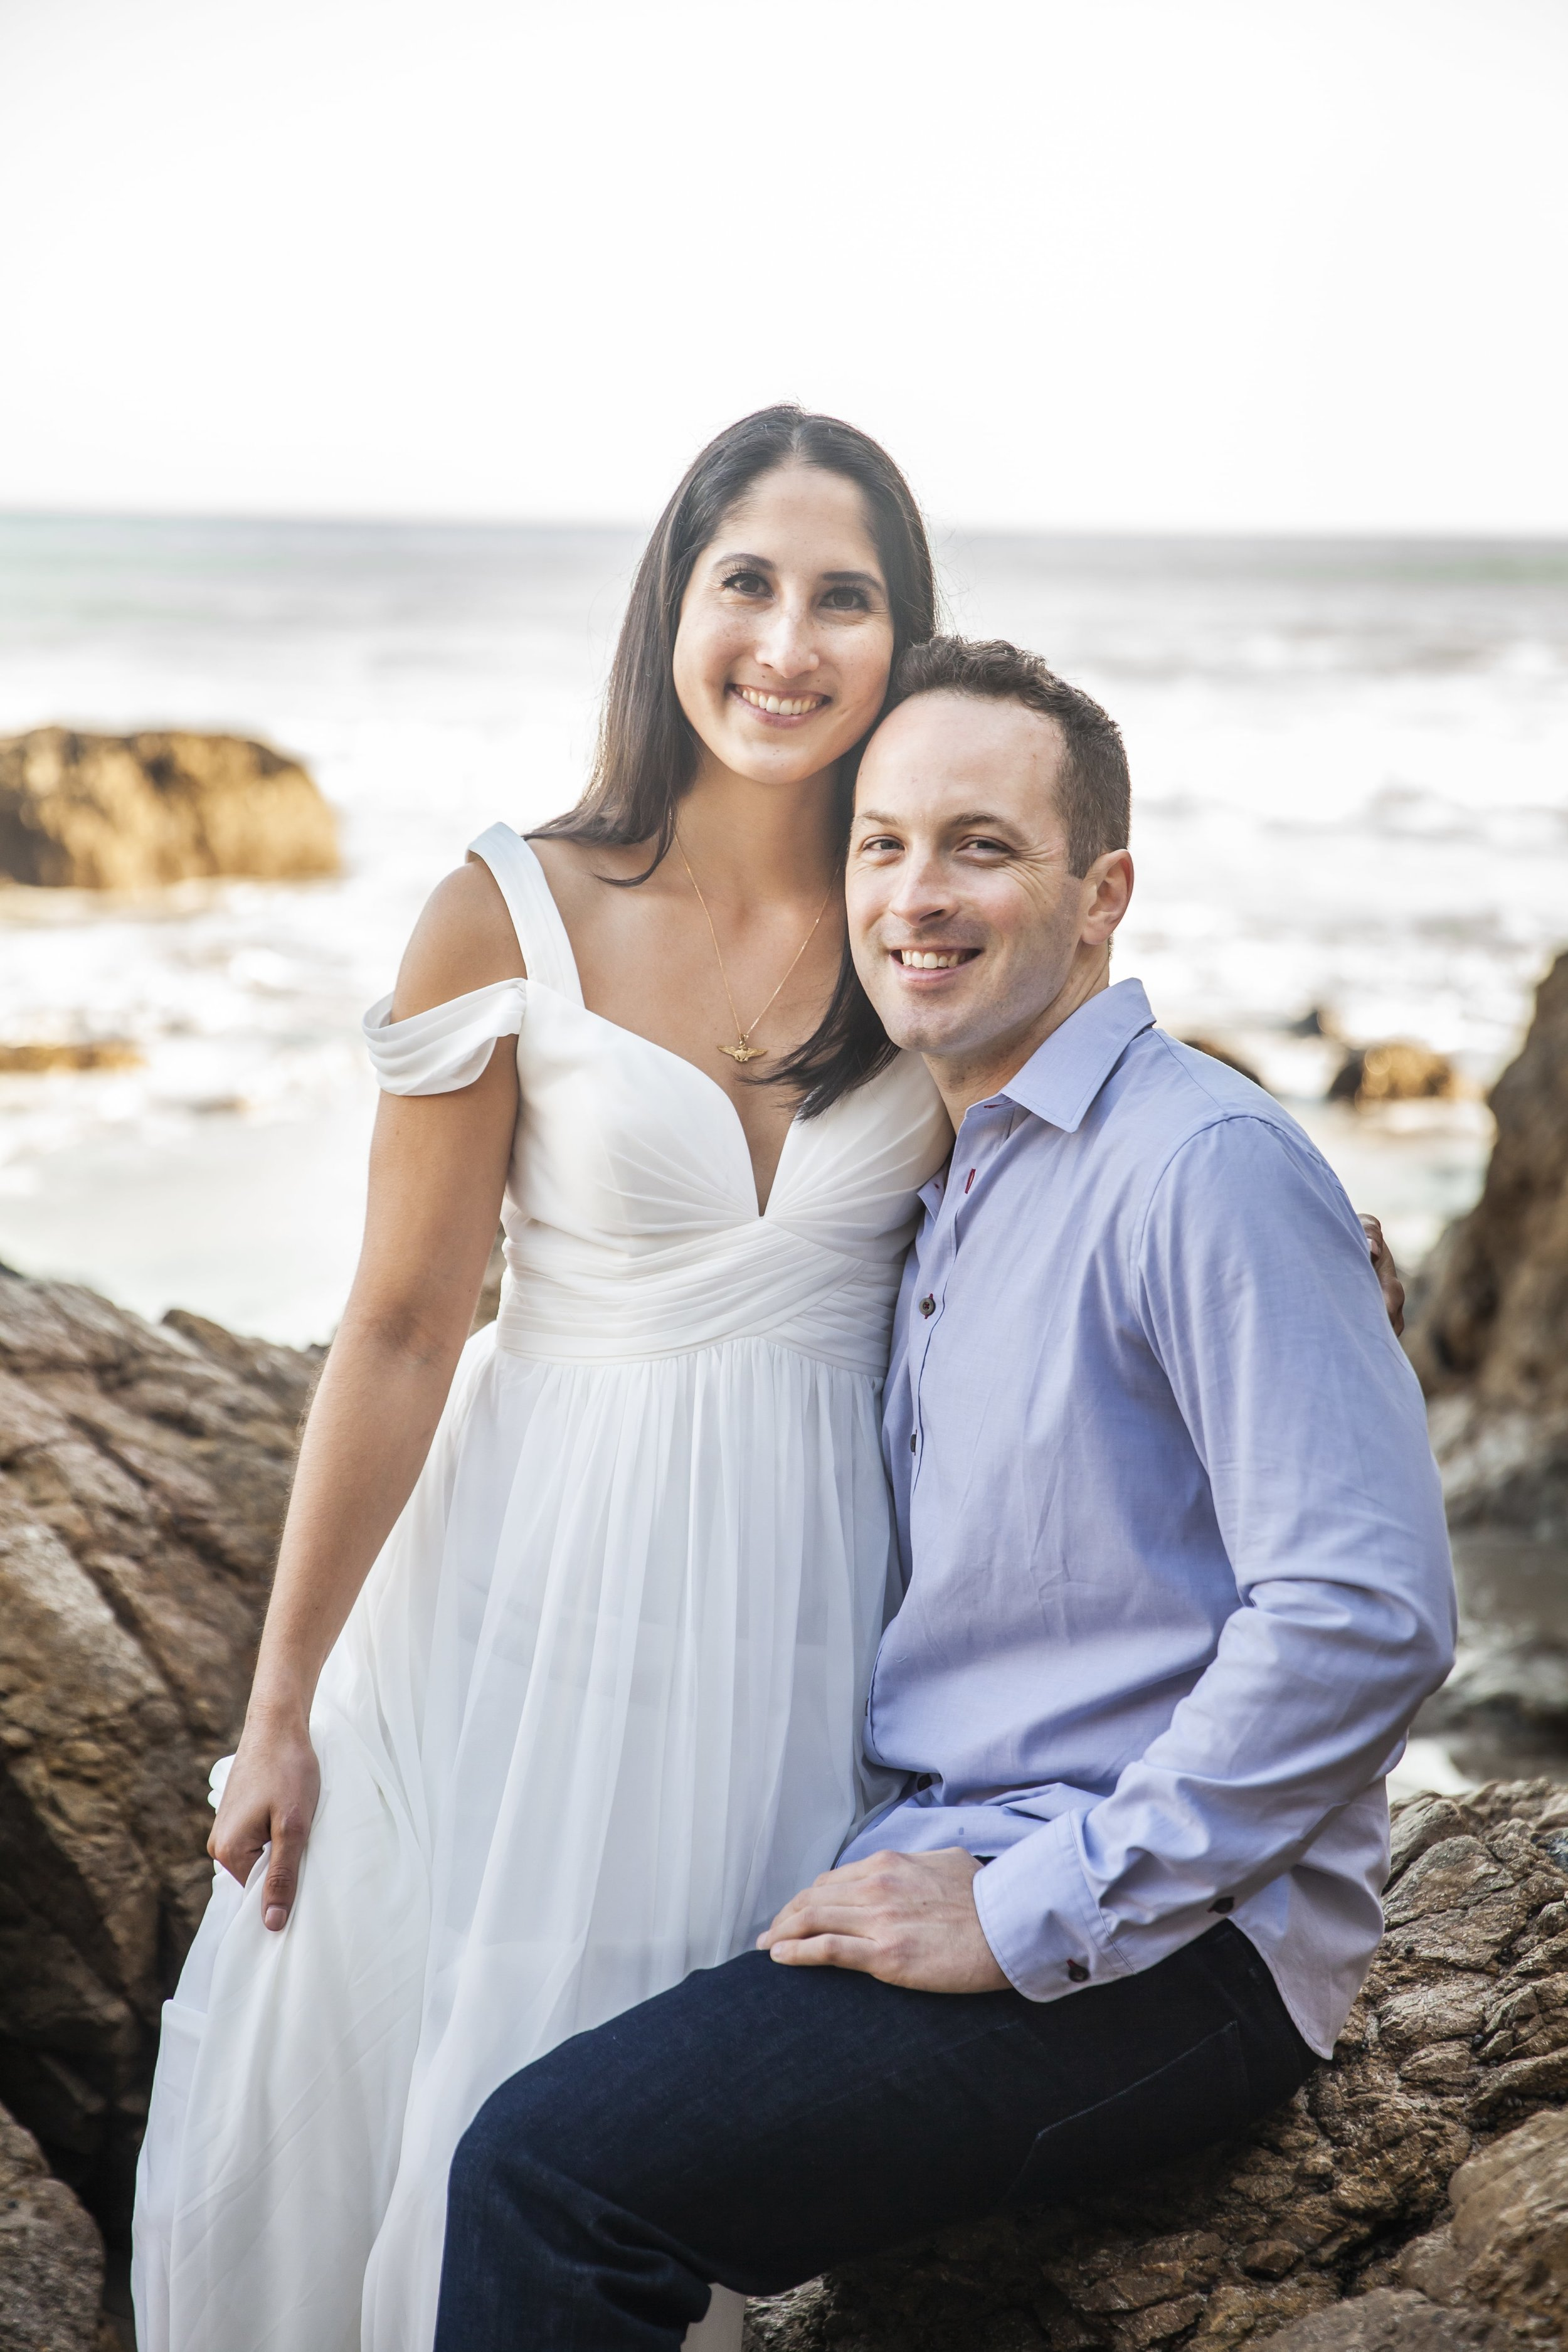 California Engagement Photography - Happy couple smiling at the camera.